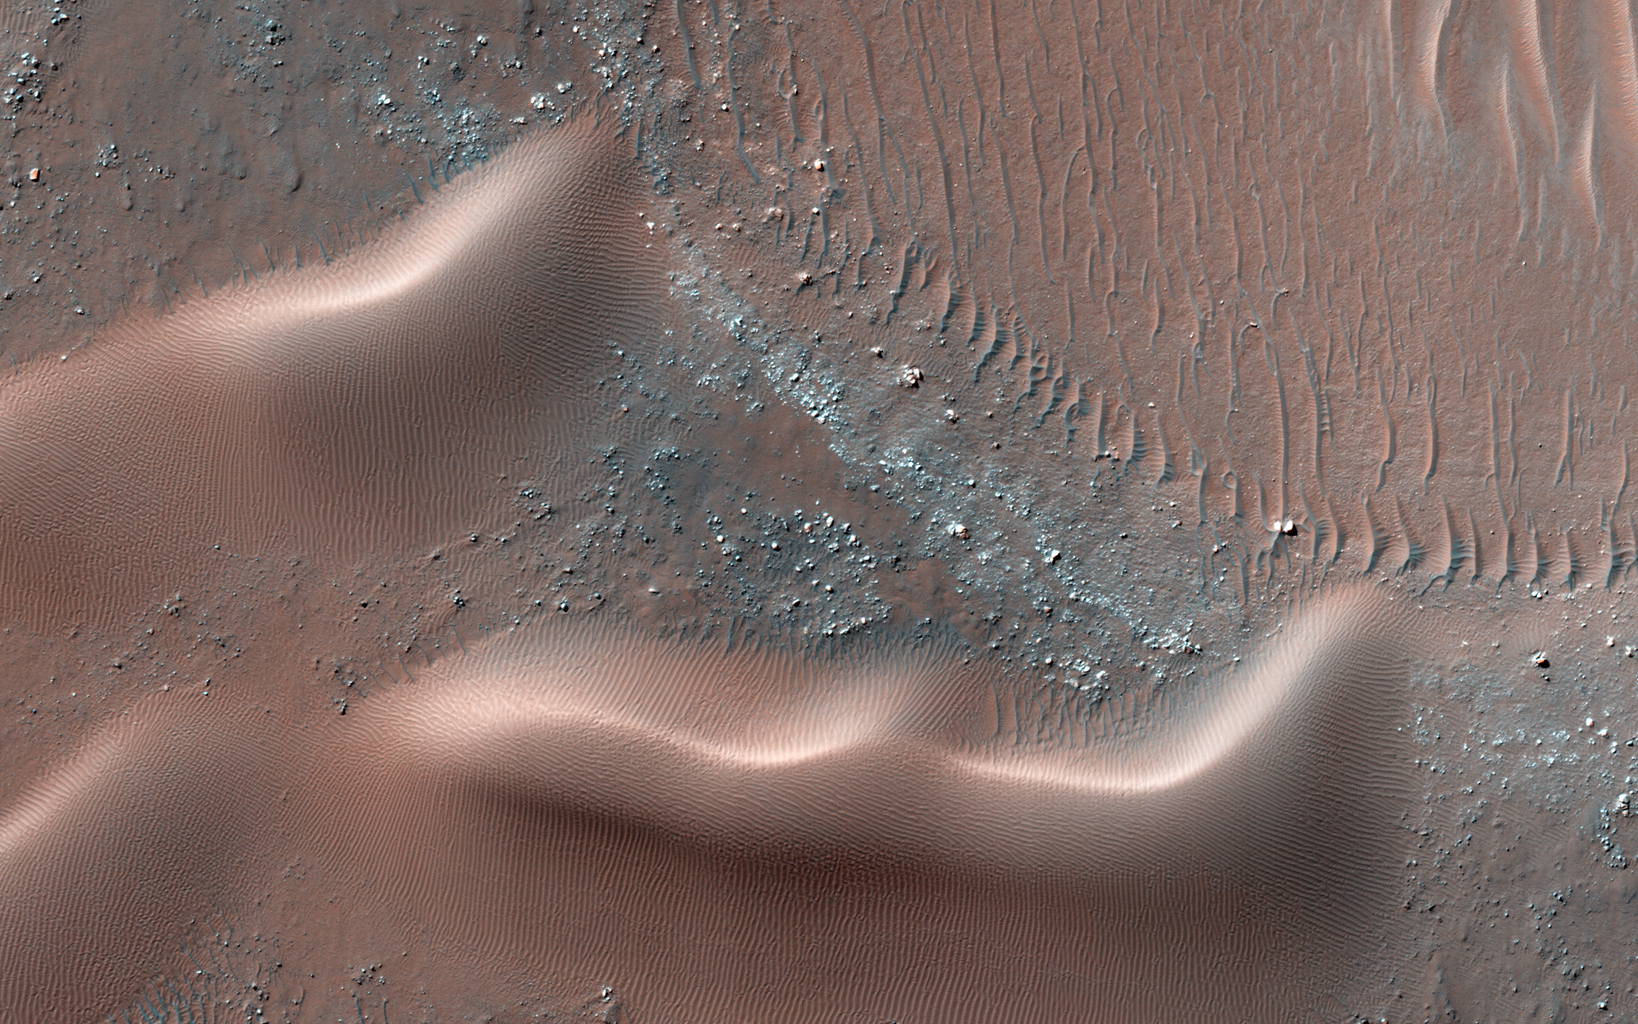 This observation from NASA's Mars Reconnaissance Orbiter is of one many that highlights new discoveries; one of these is that many sand dunes and ripples are moving, some at rates of several meters per year.